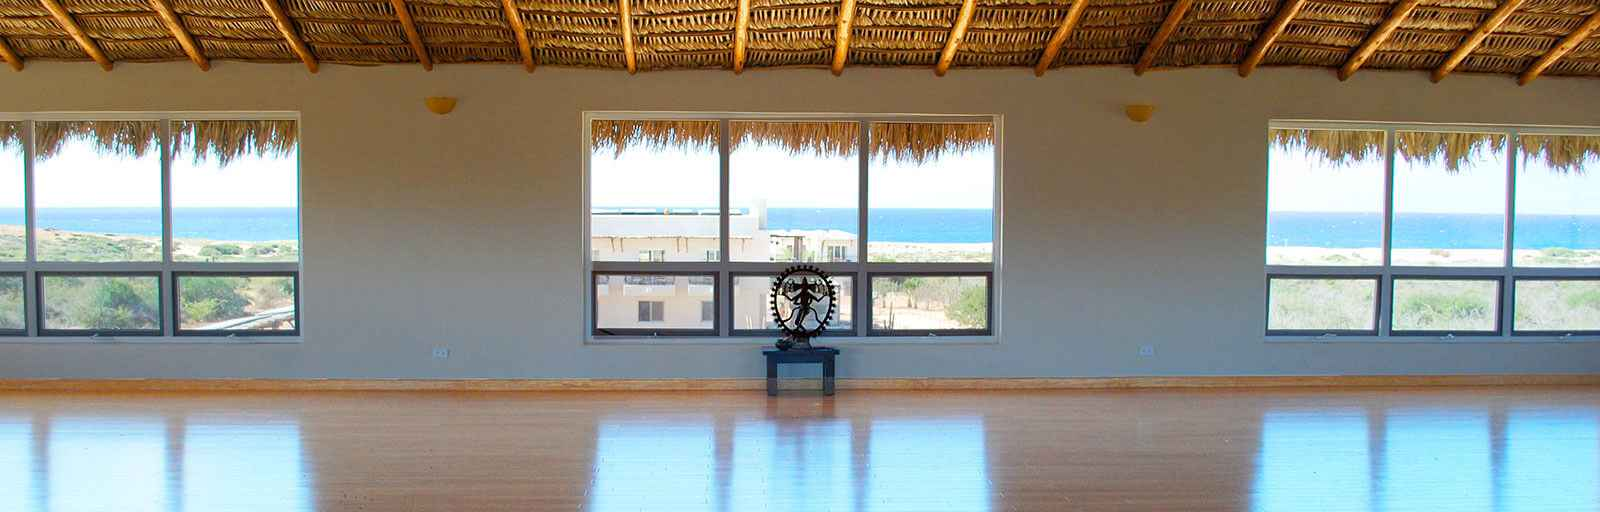 Yoga Retreat in Mexico: Yoga Studio